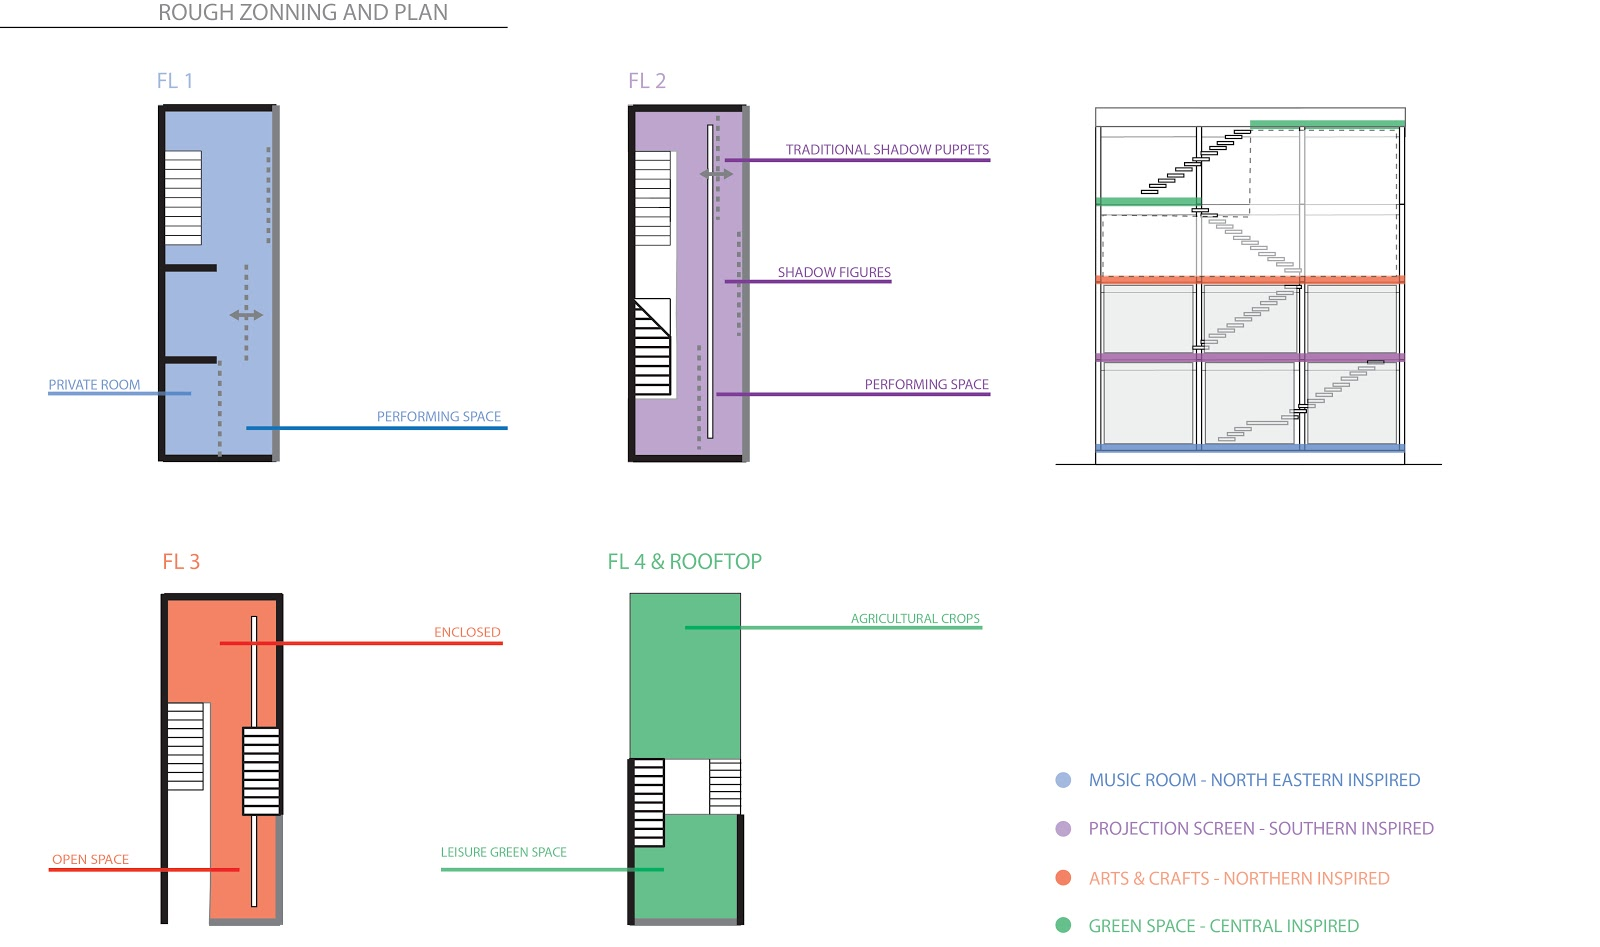 Erotics of architecture palm s proposal communal living for Architecture zoning diagram